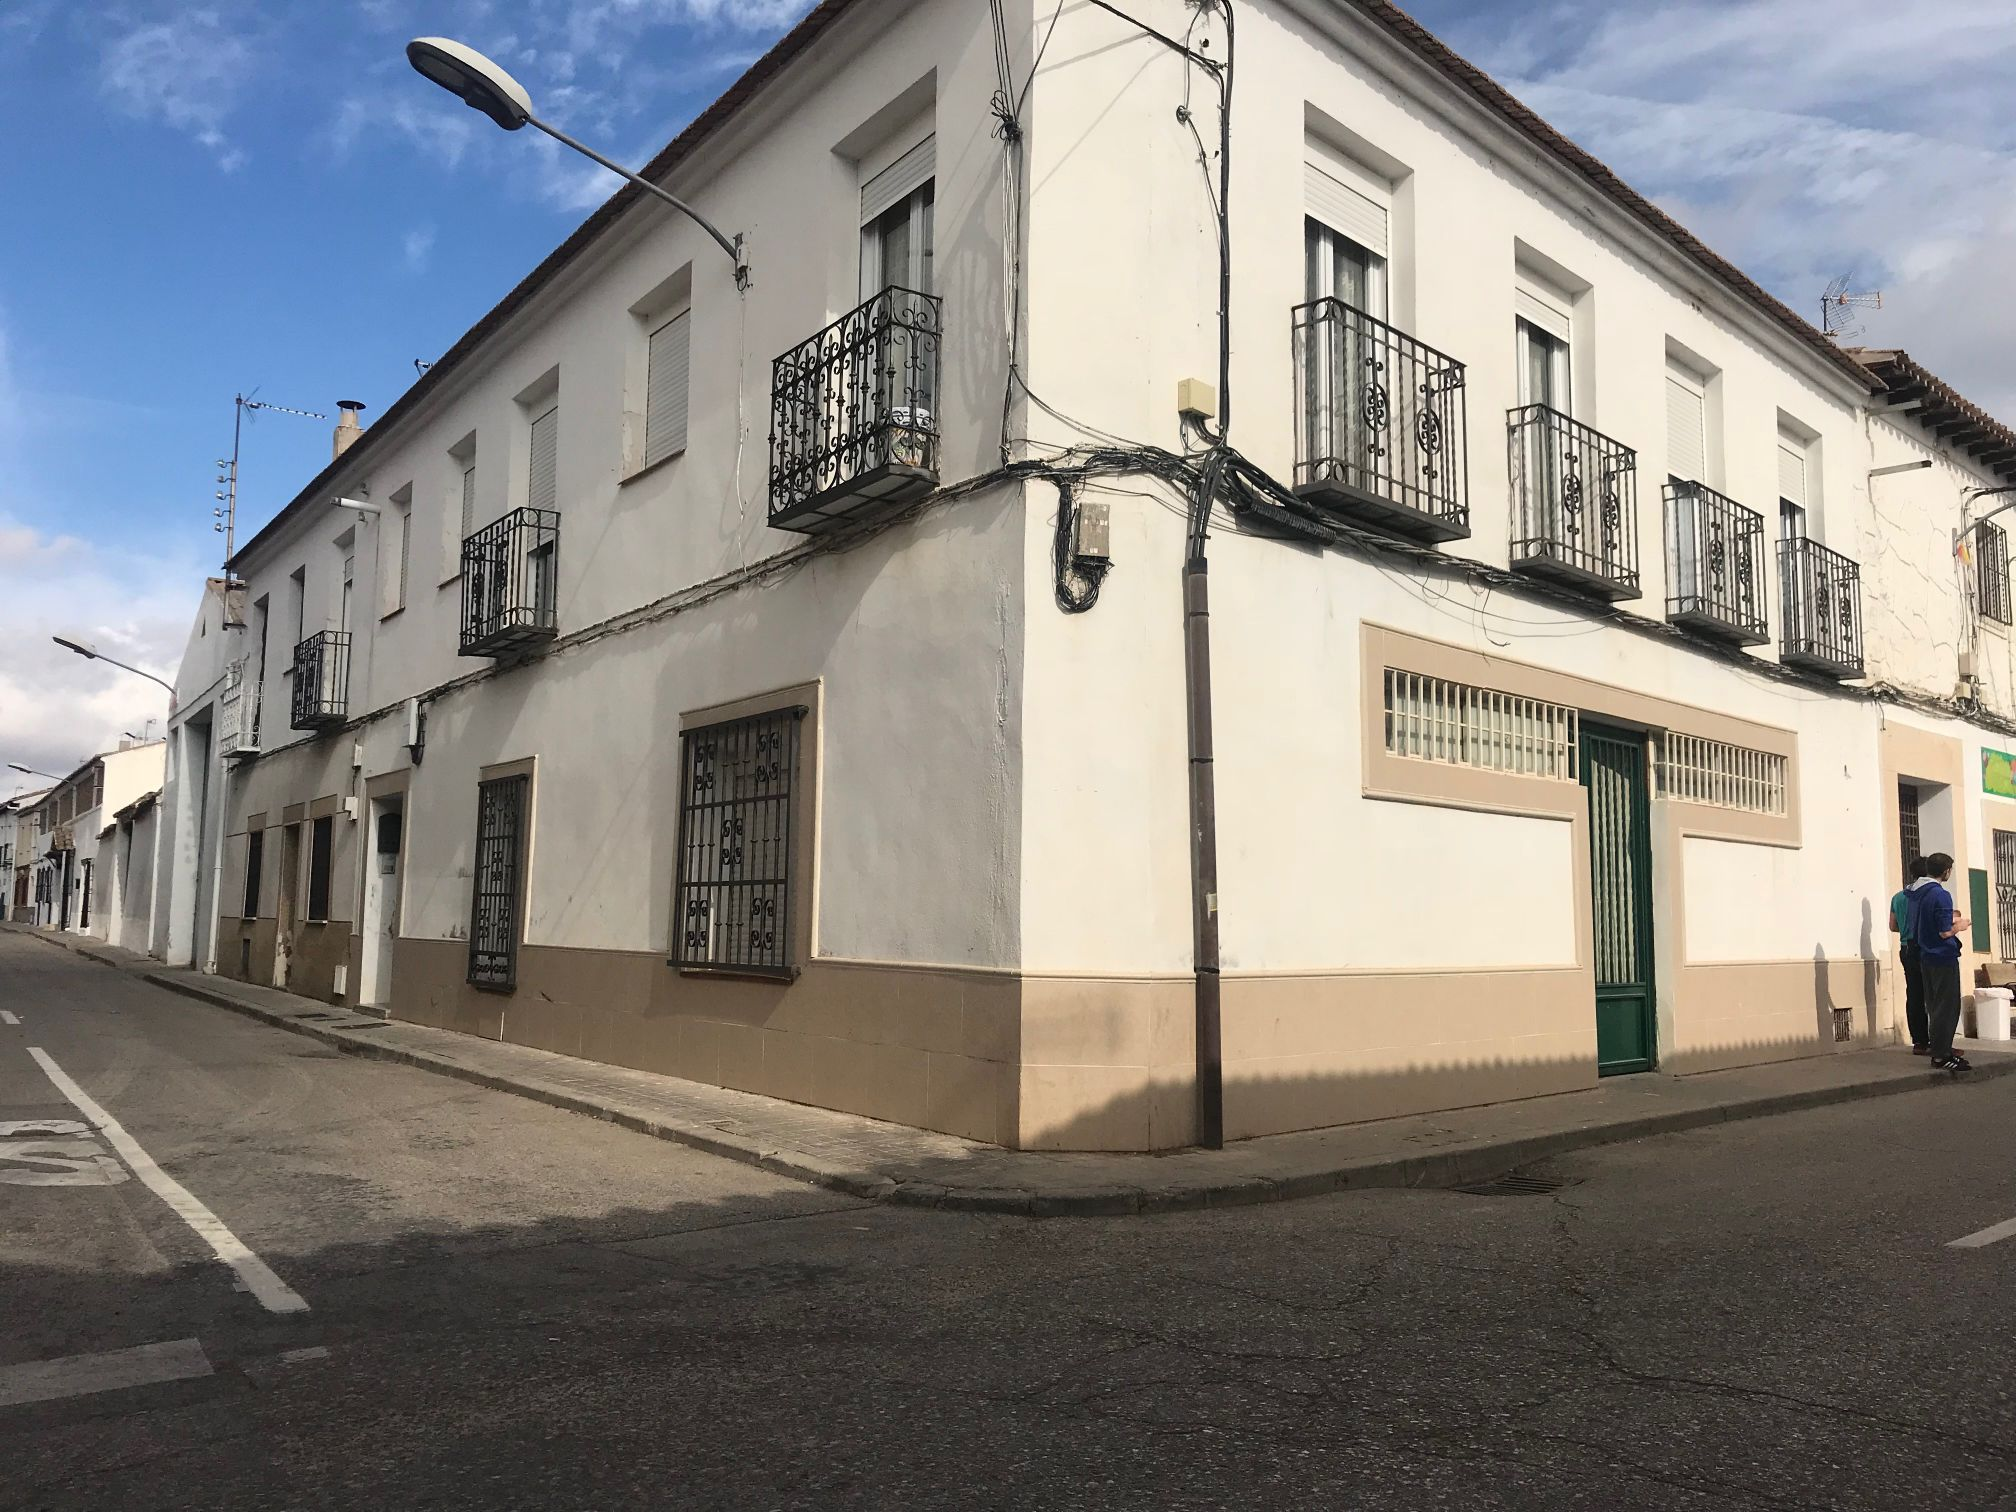 local-en-venta-en-villamanrique-de-tajo--%28madrid%29